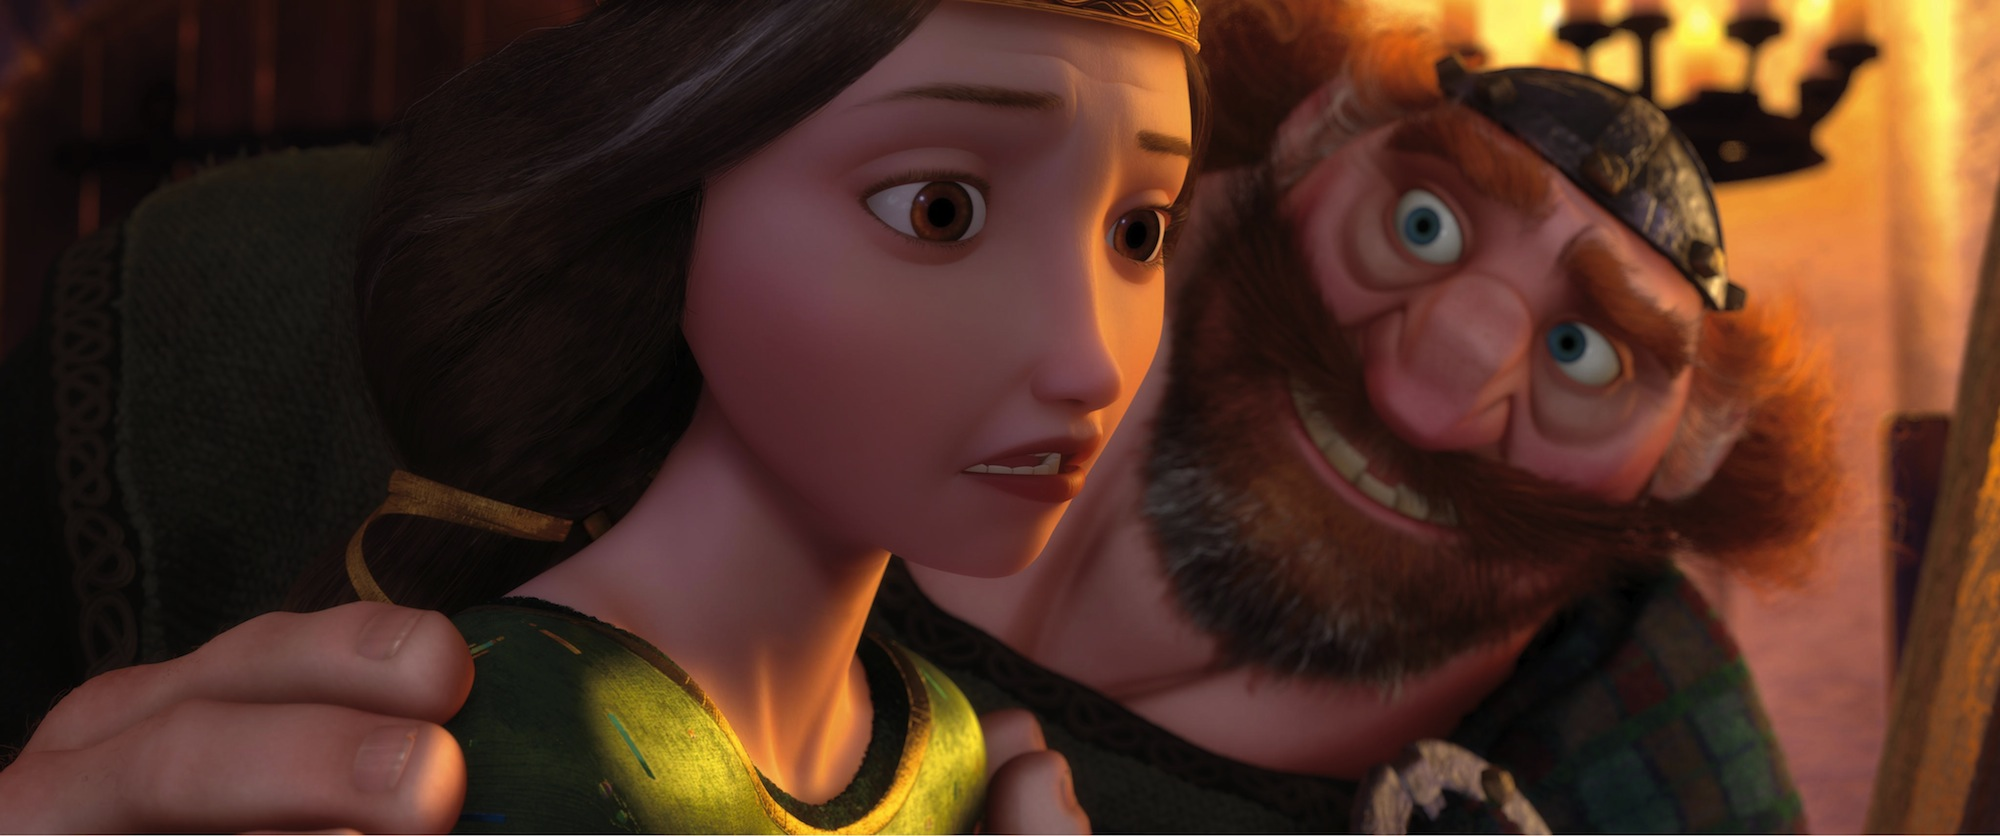 New 'Brave' Trailer Hitting The Web Tomorrow